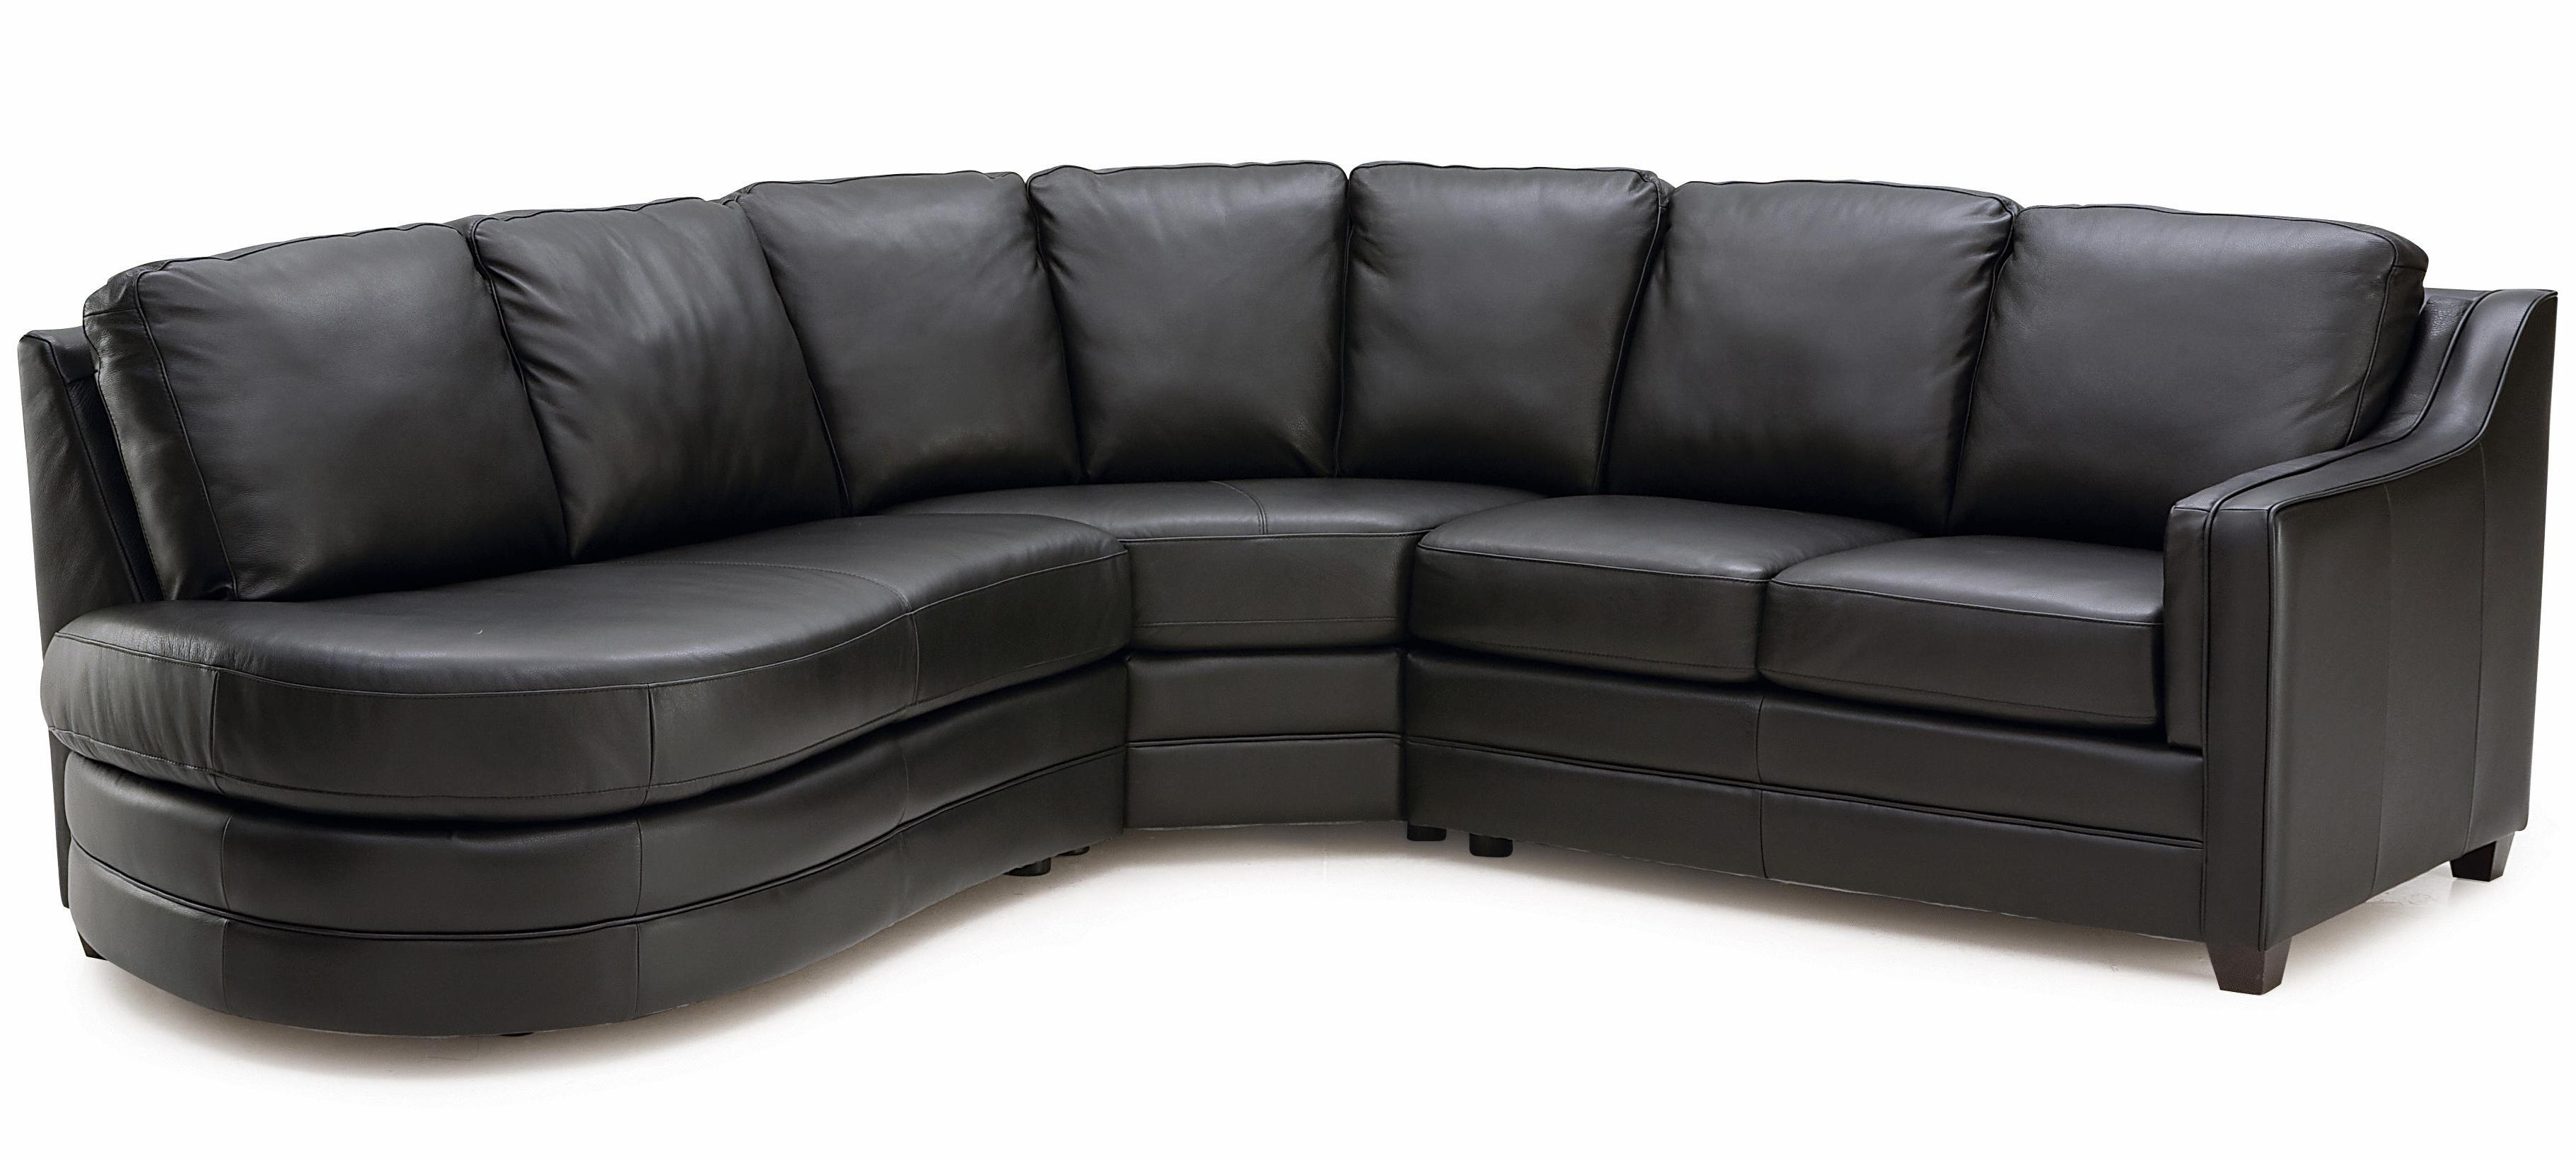 Palliser Corissa Contemporary Sectional Sofa – Ahfa – Sofa Intended For Fashionable Evansville In Sectional Sofas (View 12 of 15)